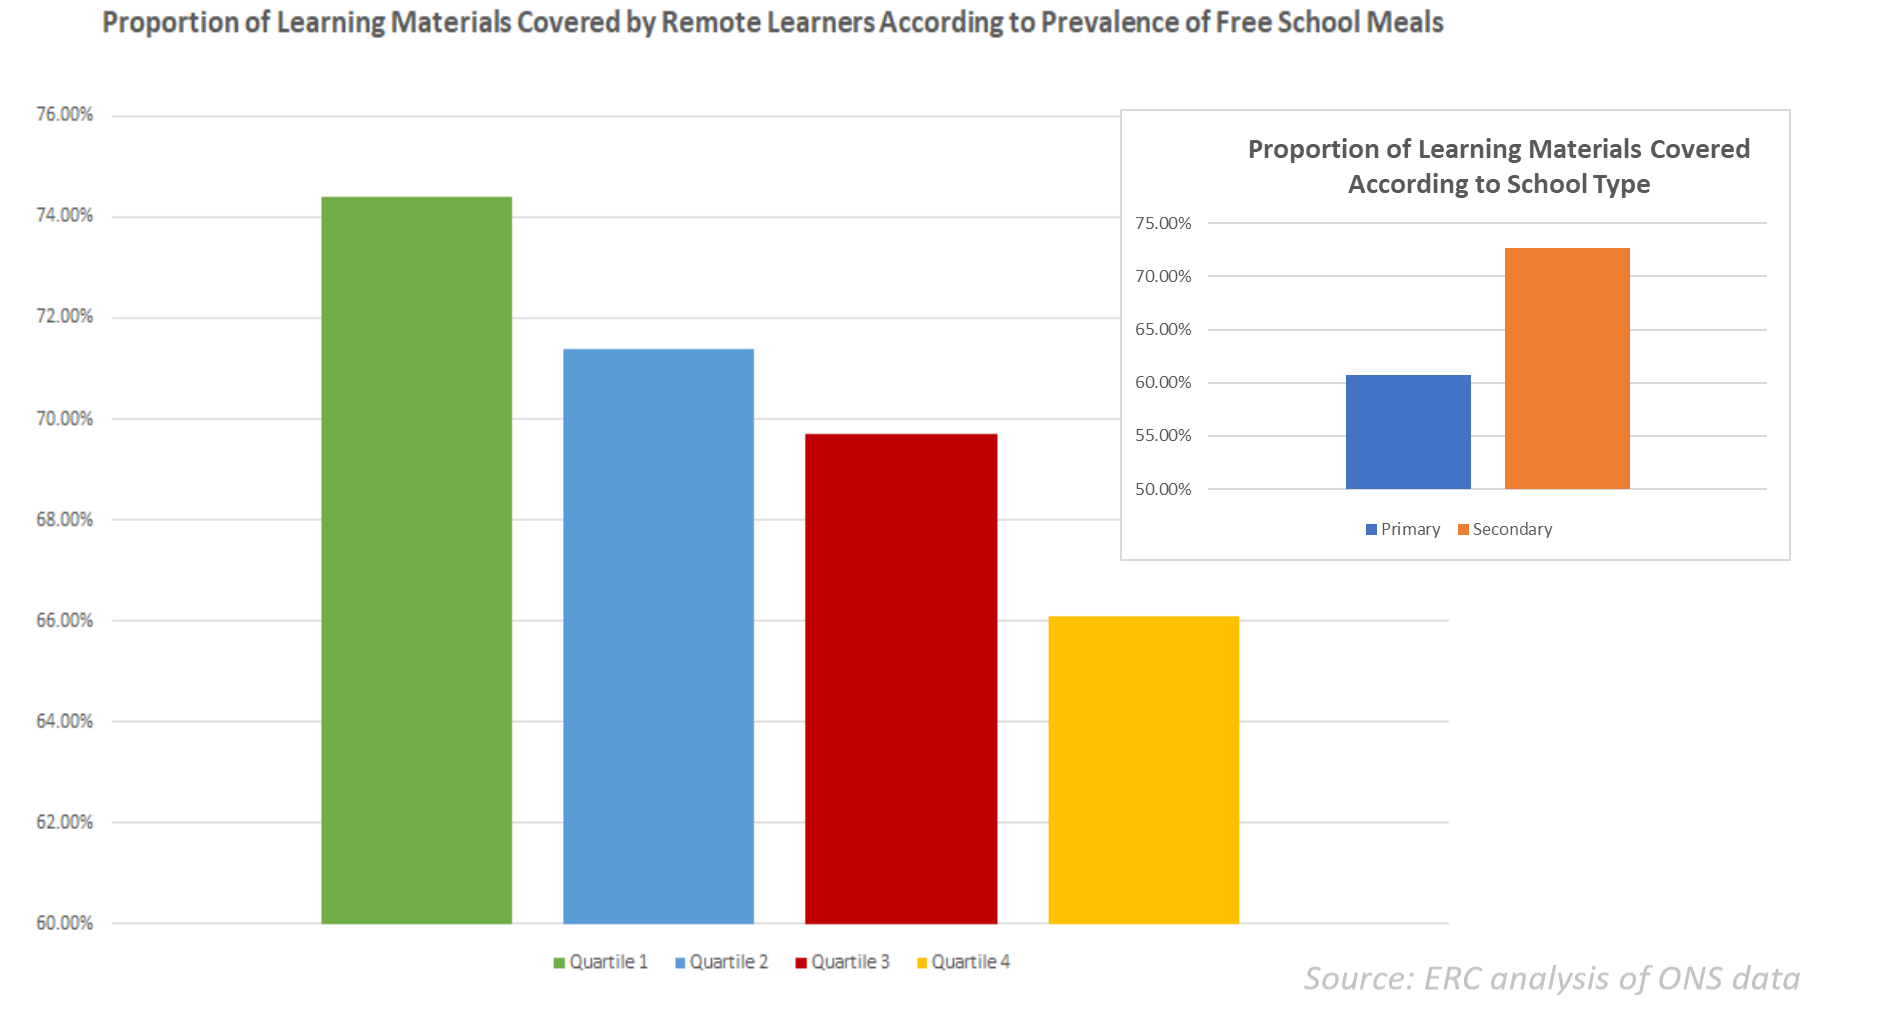 Free school meals and remote learning